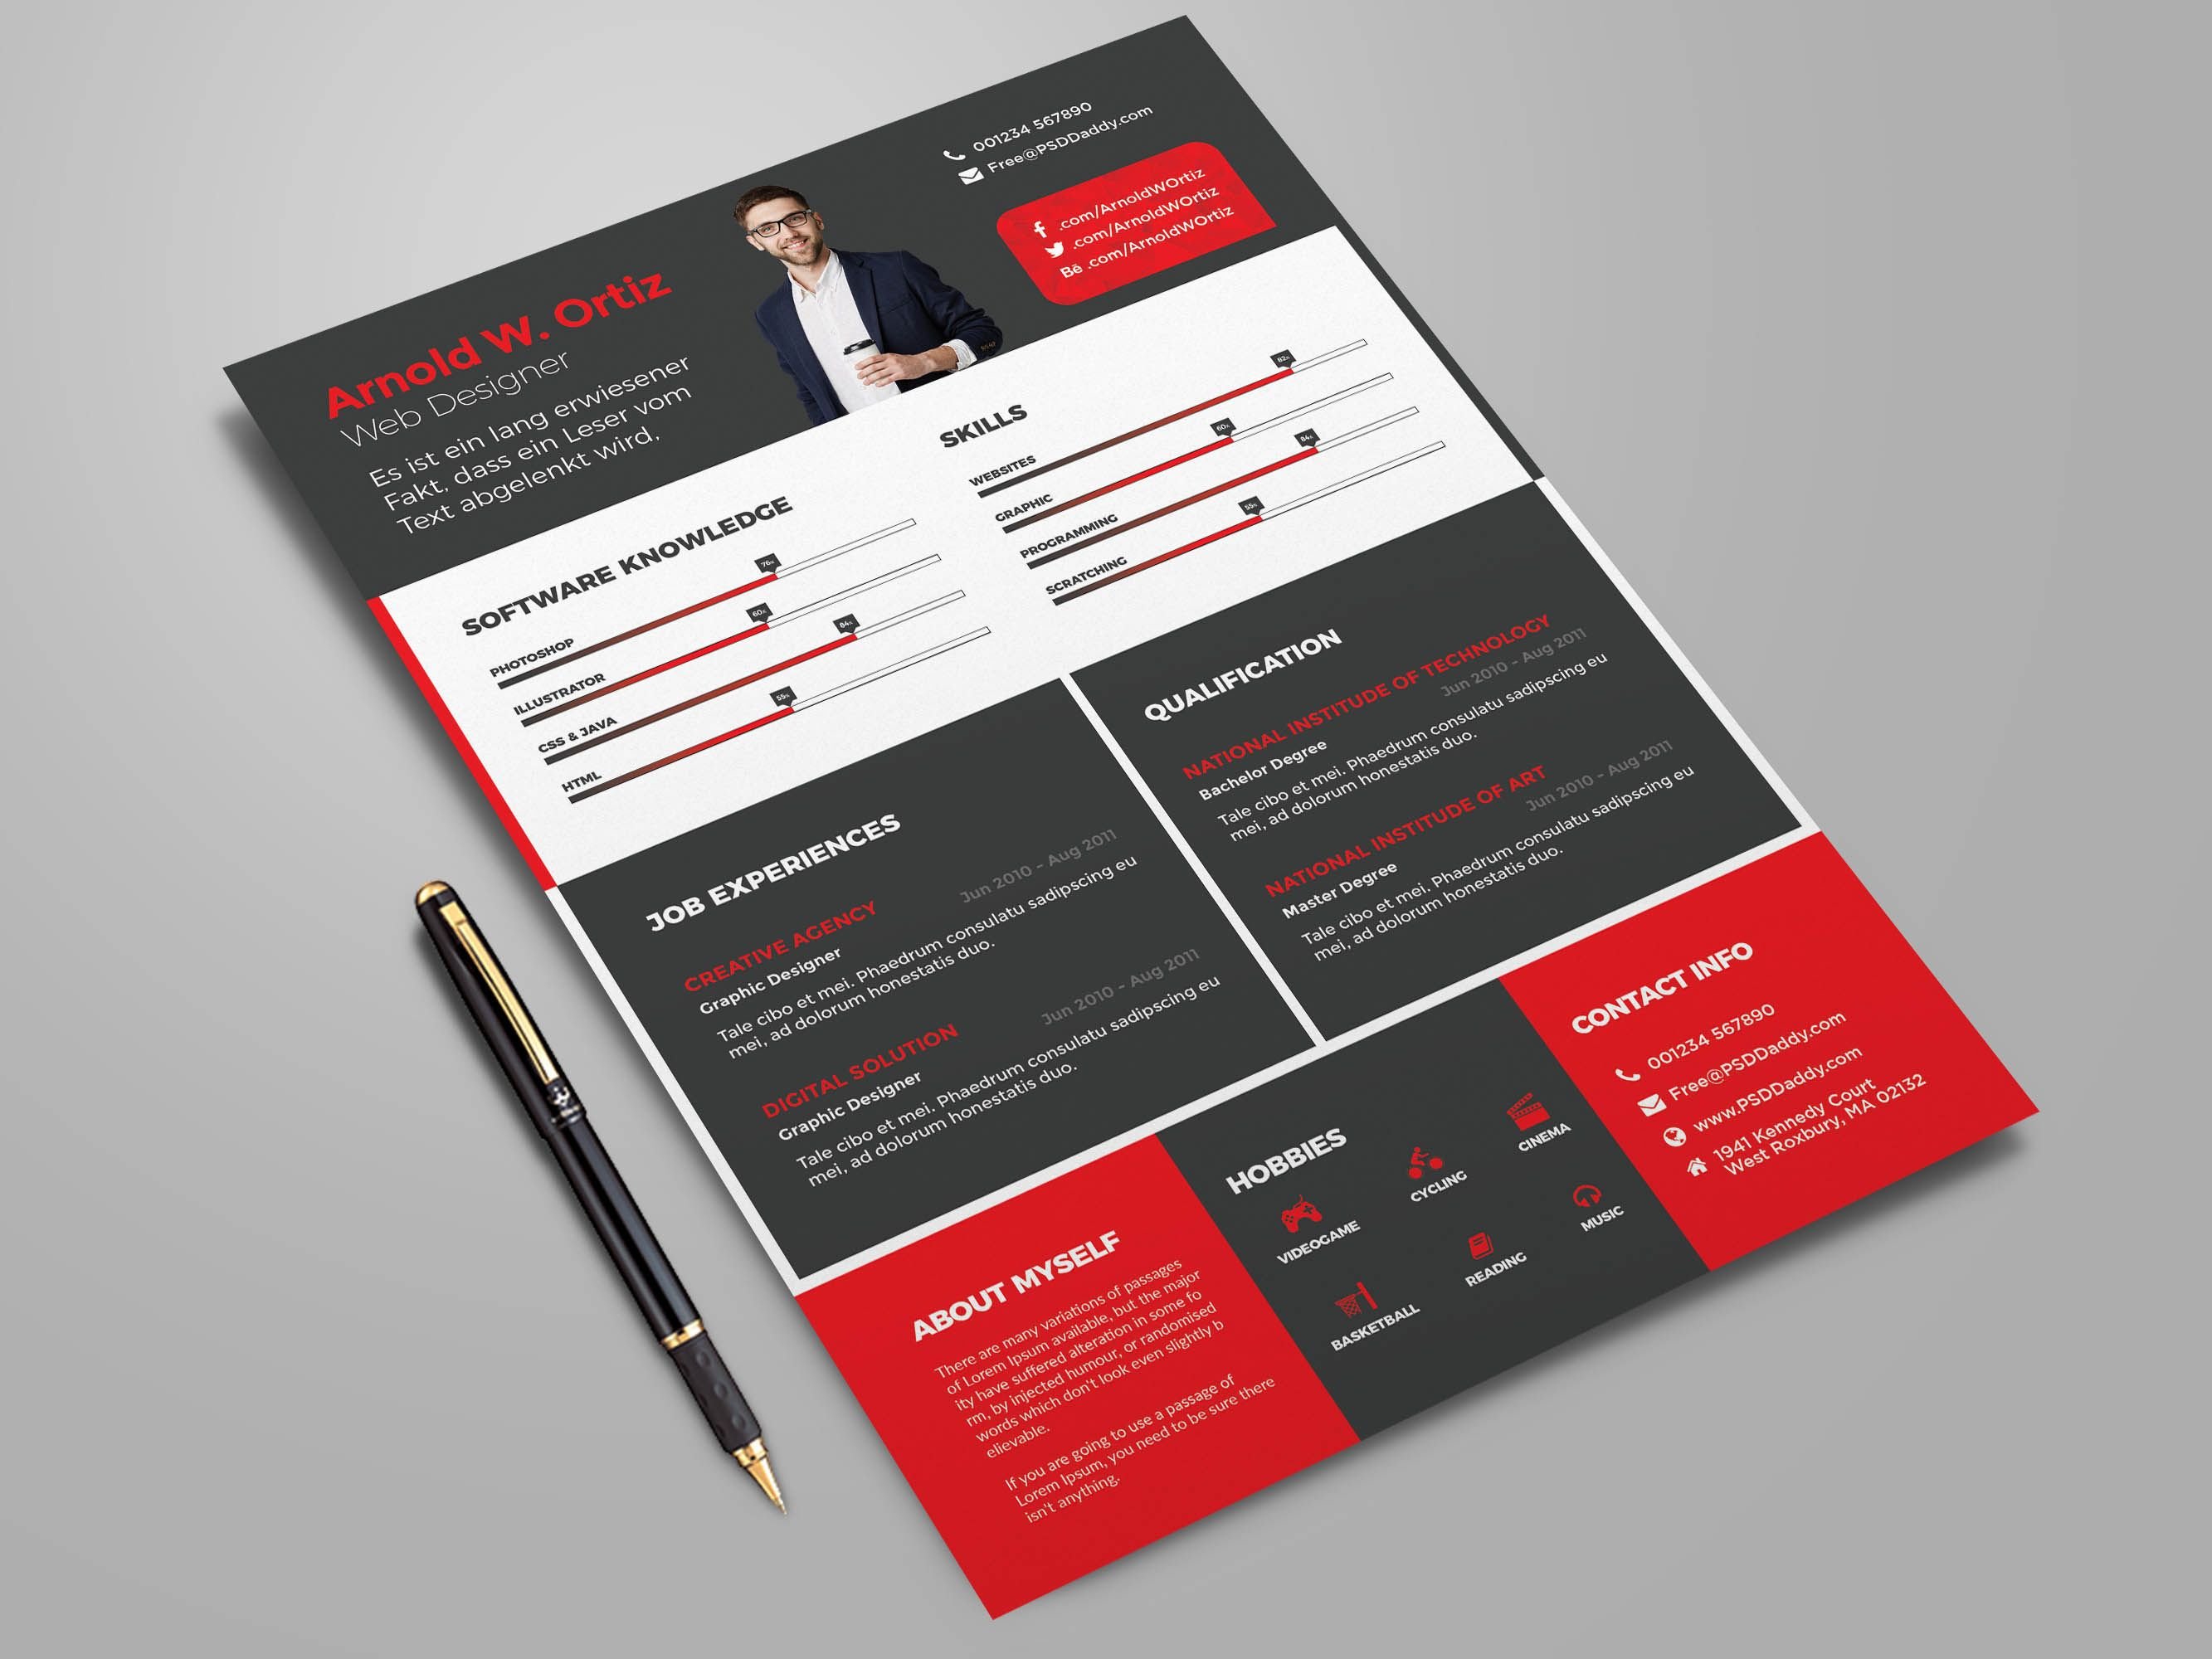 Free Professional Resume Template - Free professional resume template, Cv template free, Cv template, Resume template professional, Resume template, Resume template free - Resume design bundle with four colors option for any job seeker  Itis designed to put your best foot forward and stand out of the whole lot of applicants  There is 4 colours option, Ready to print